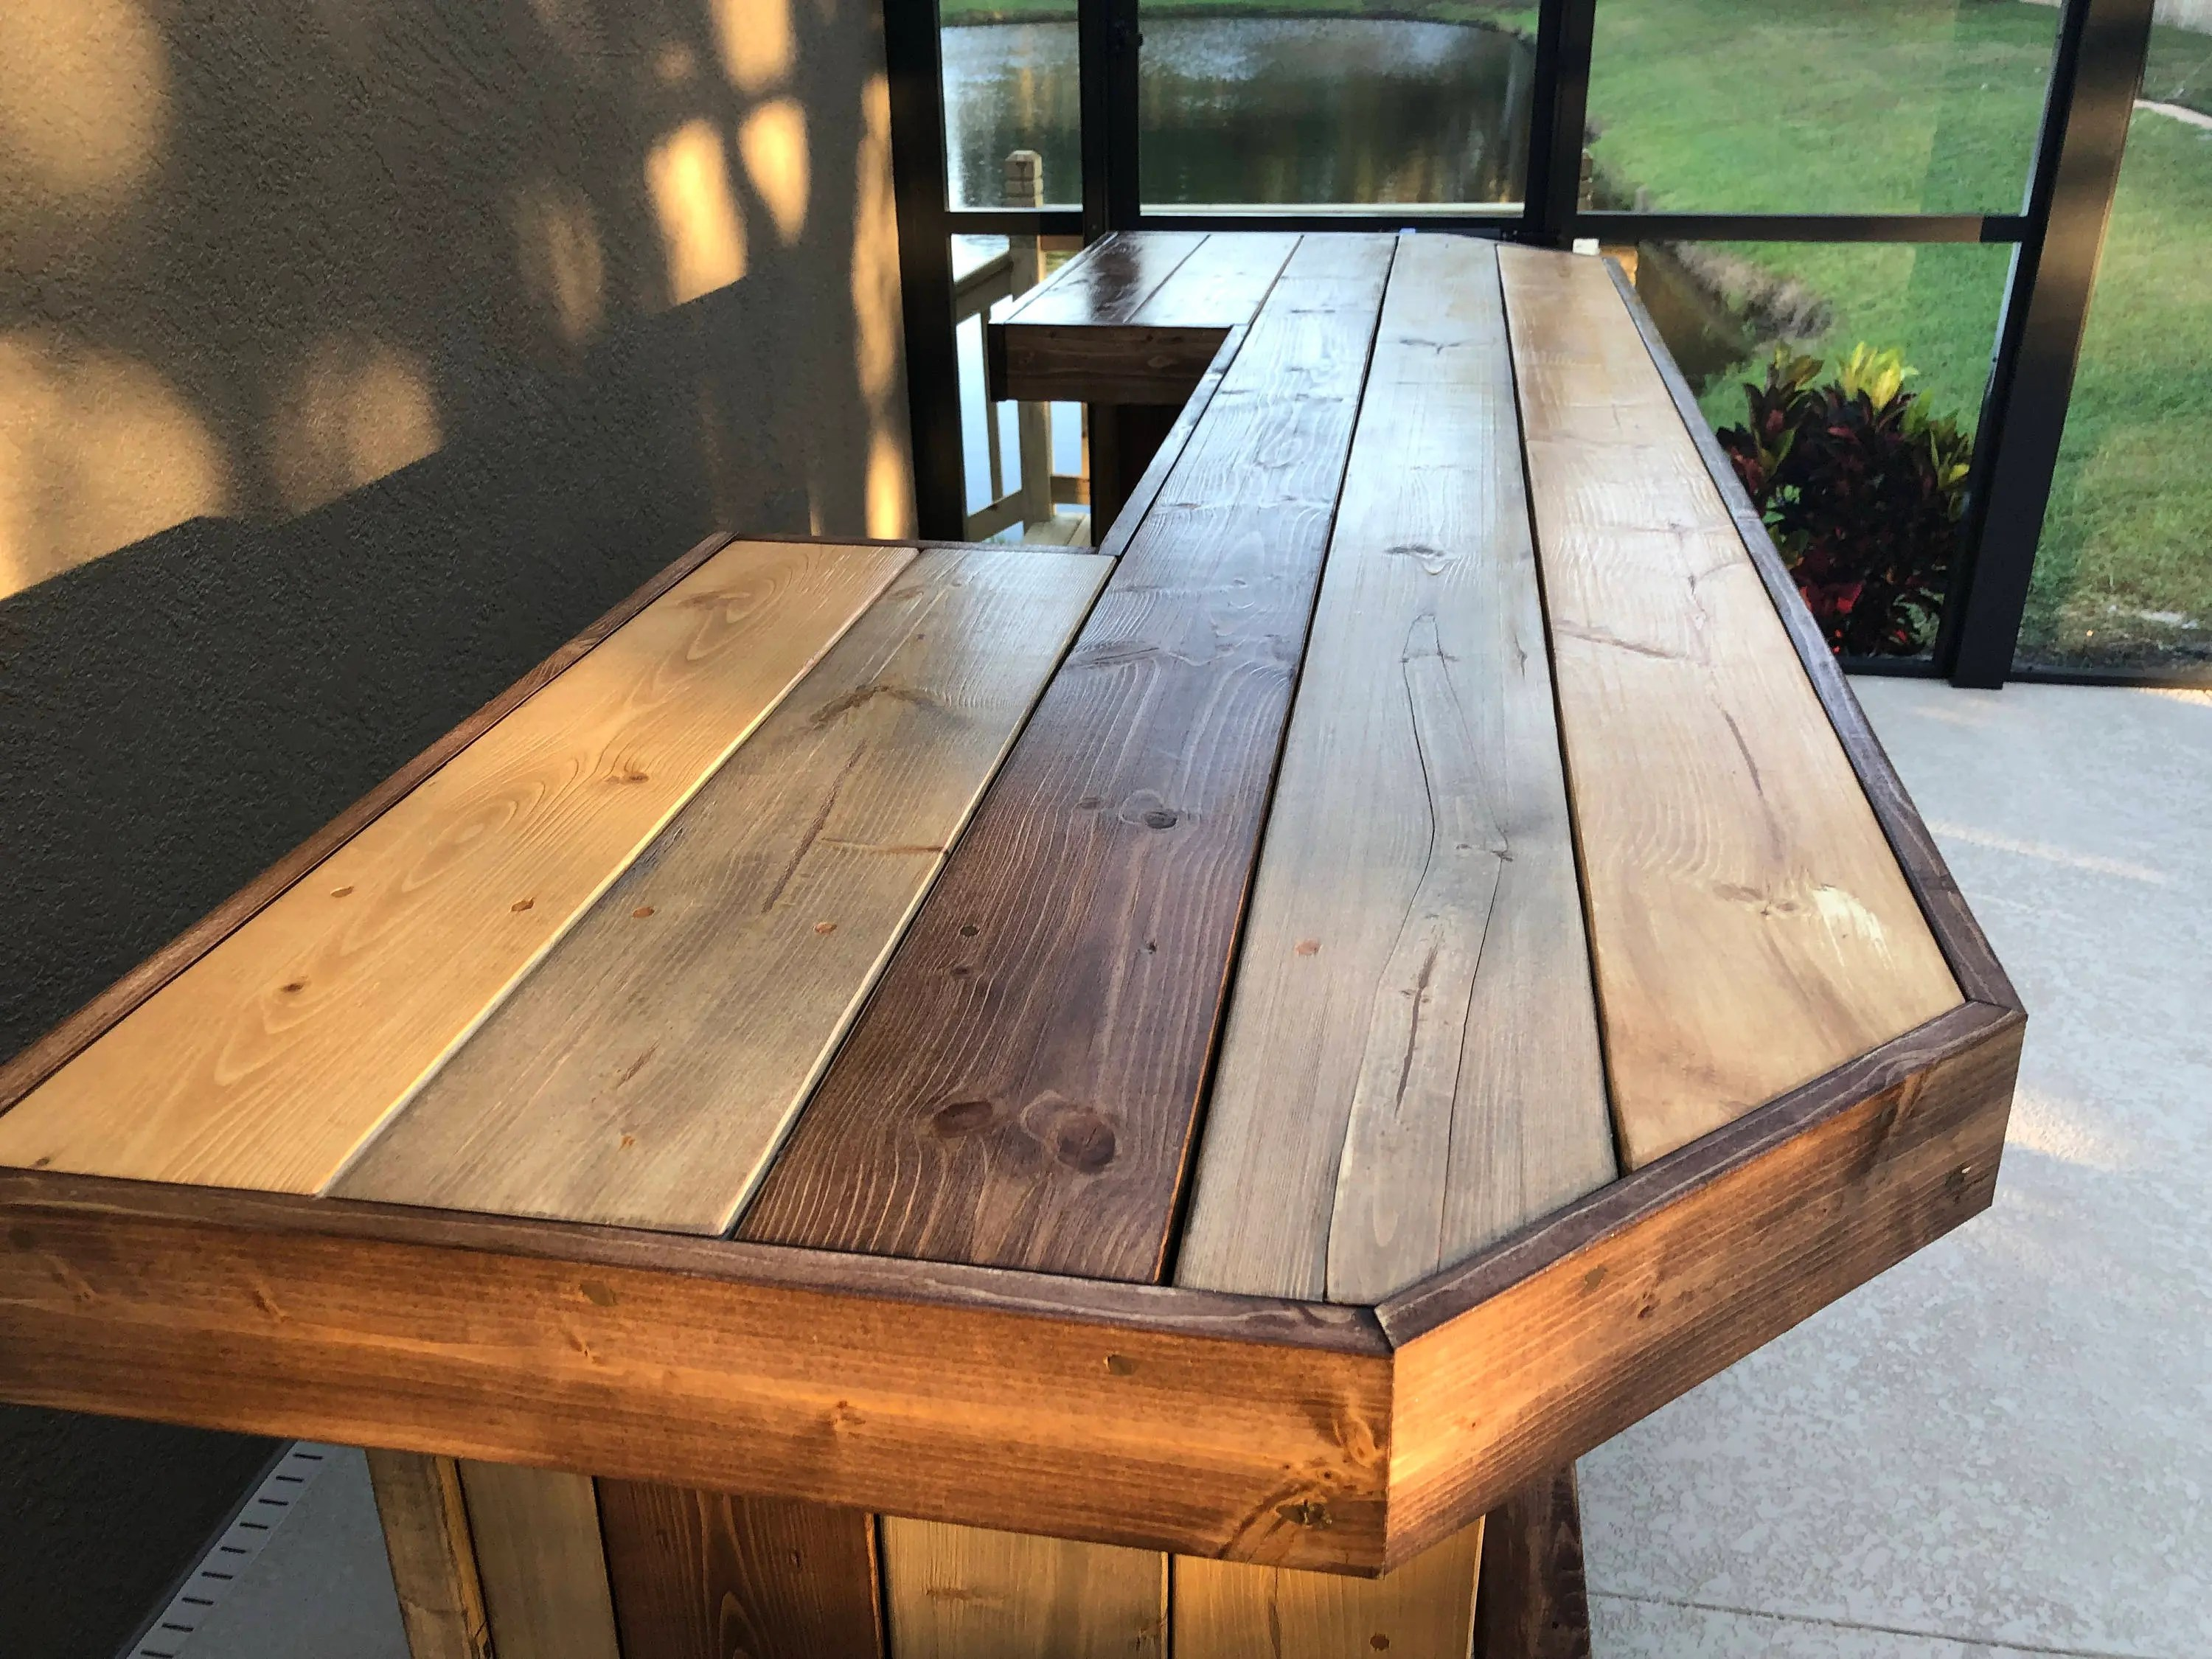 Rustic Style Bar The Plank Top Maggie 8 Rustic Finished Barnwood Or Pallet Style